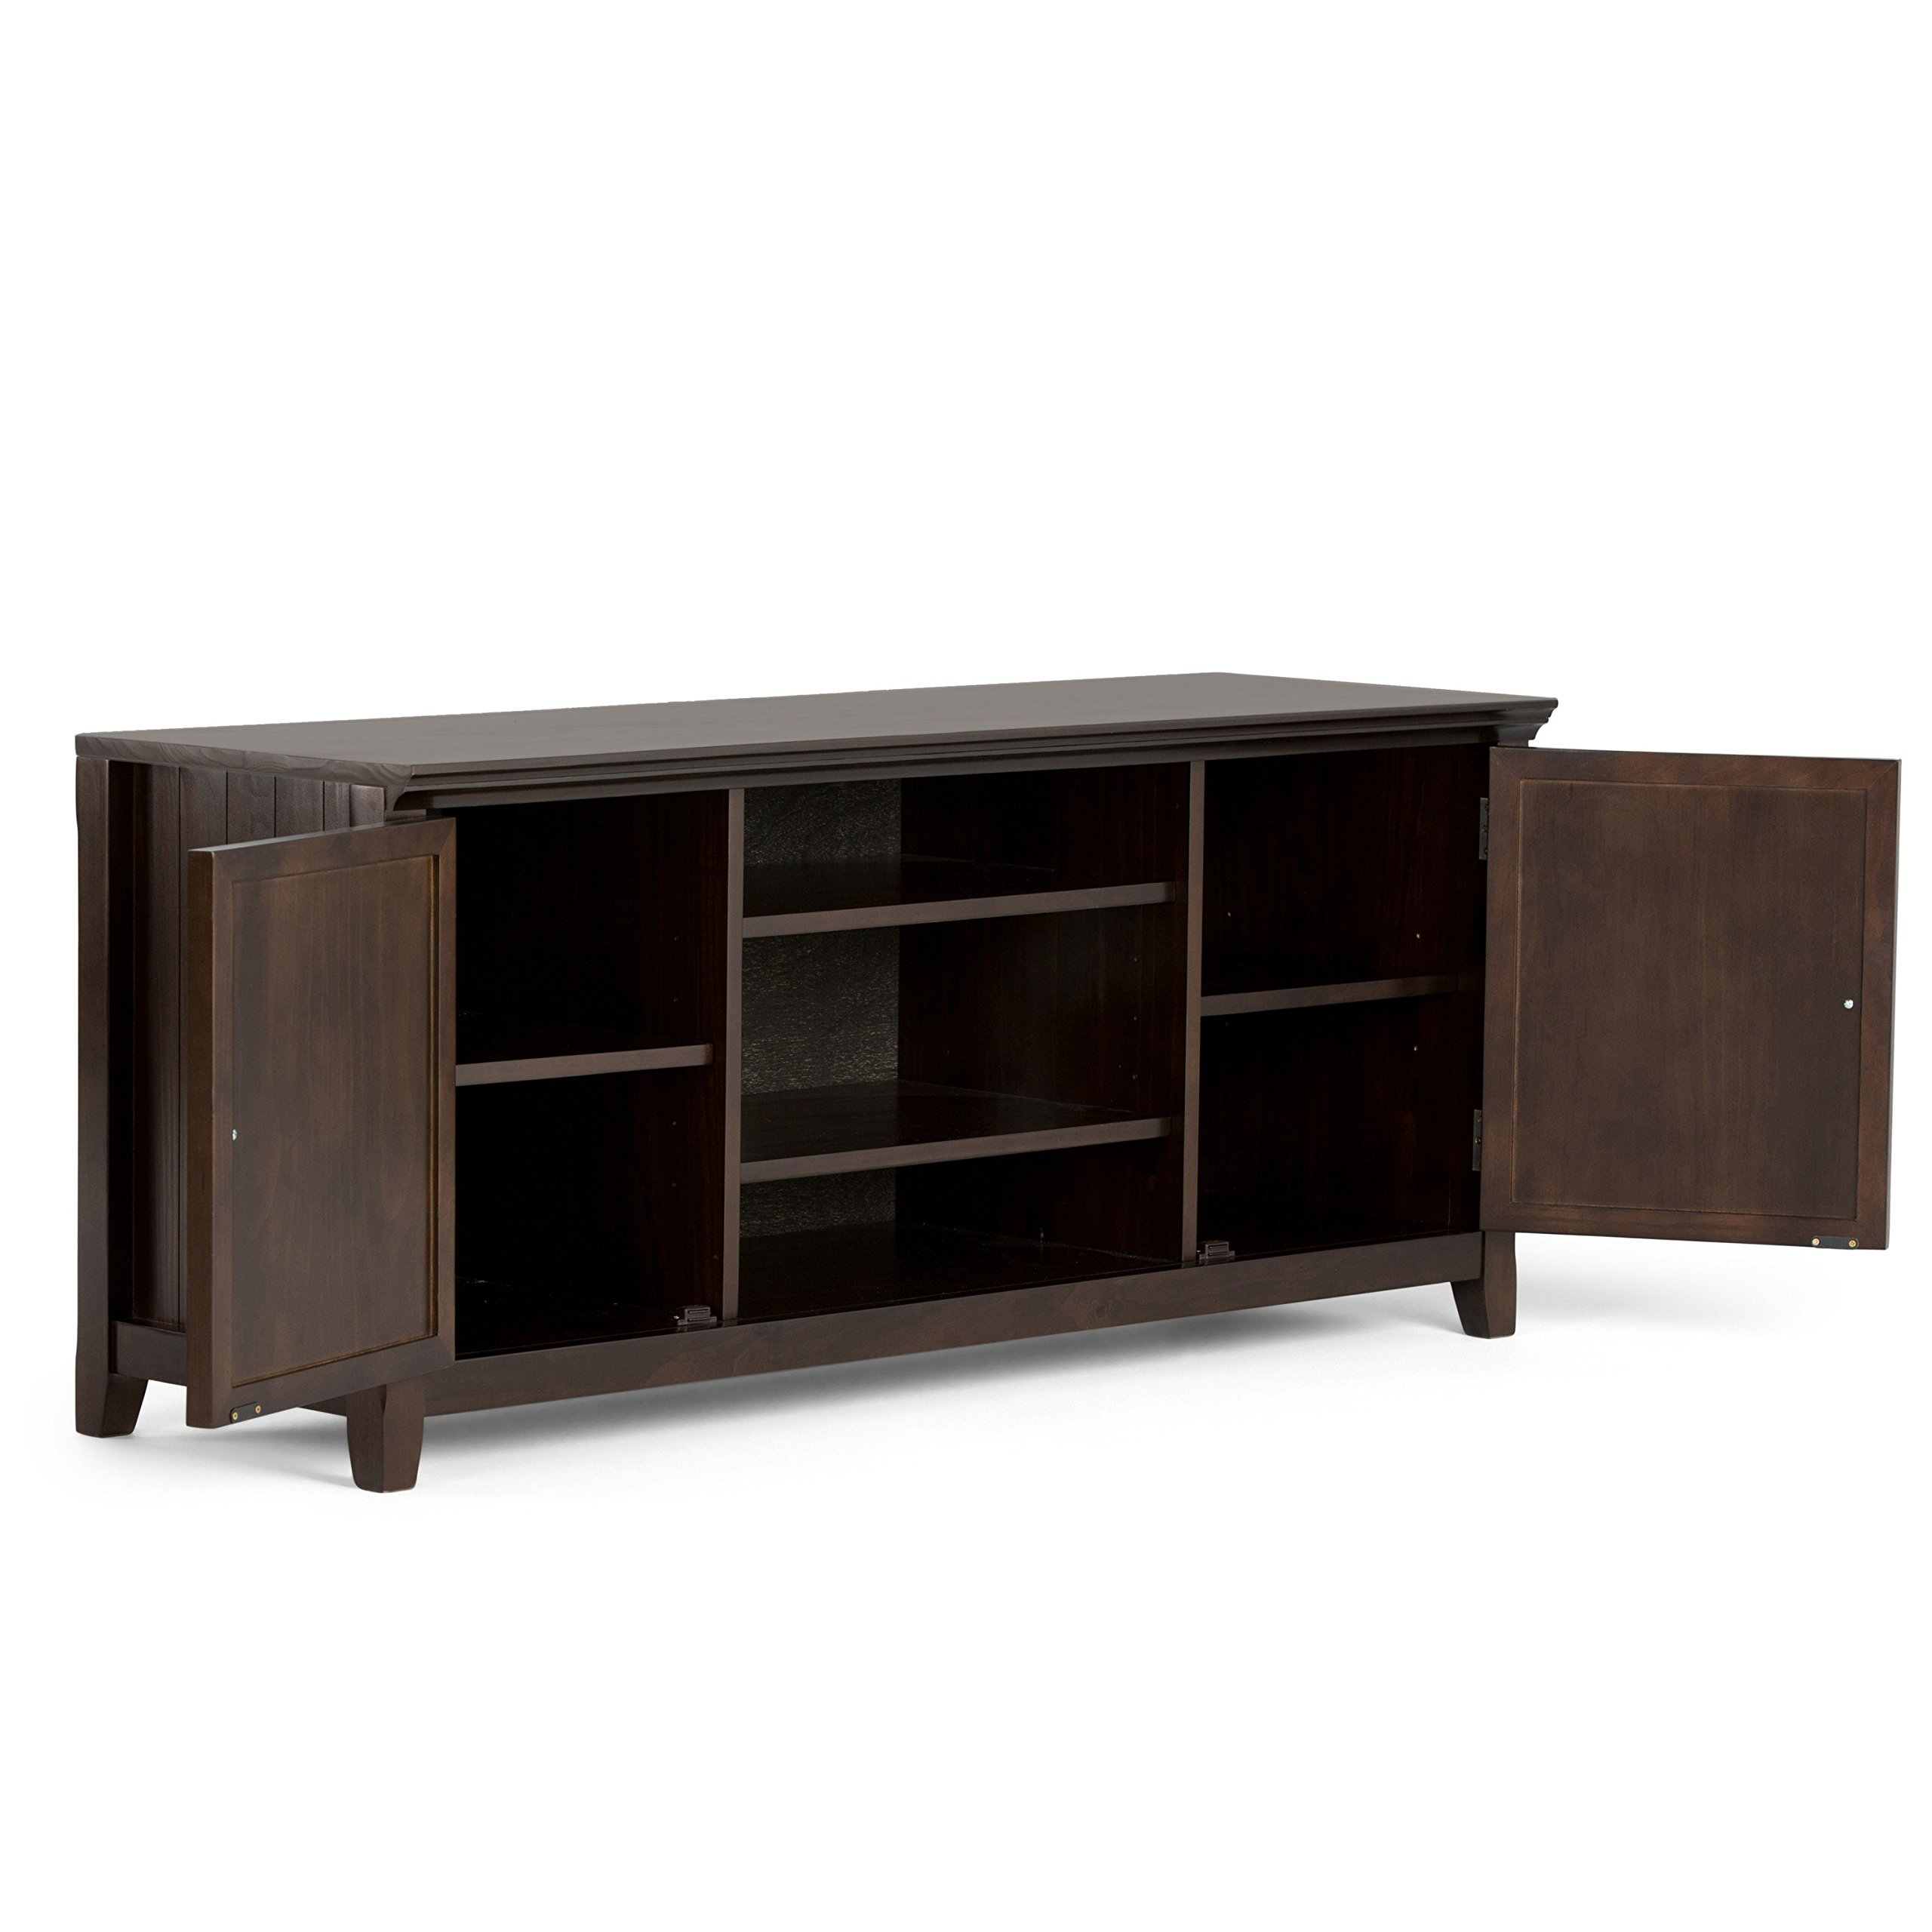 Simpli Home Acadian Solid Wood TV Media Stand for TVs up to 60'', Rich Tobacco Brown by Simpli Home (Image #3)